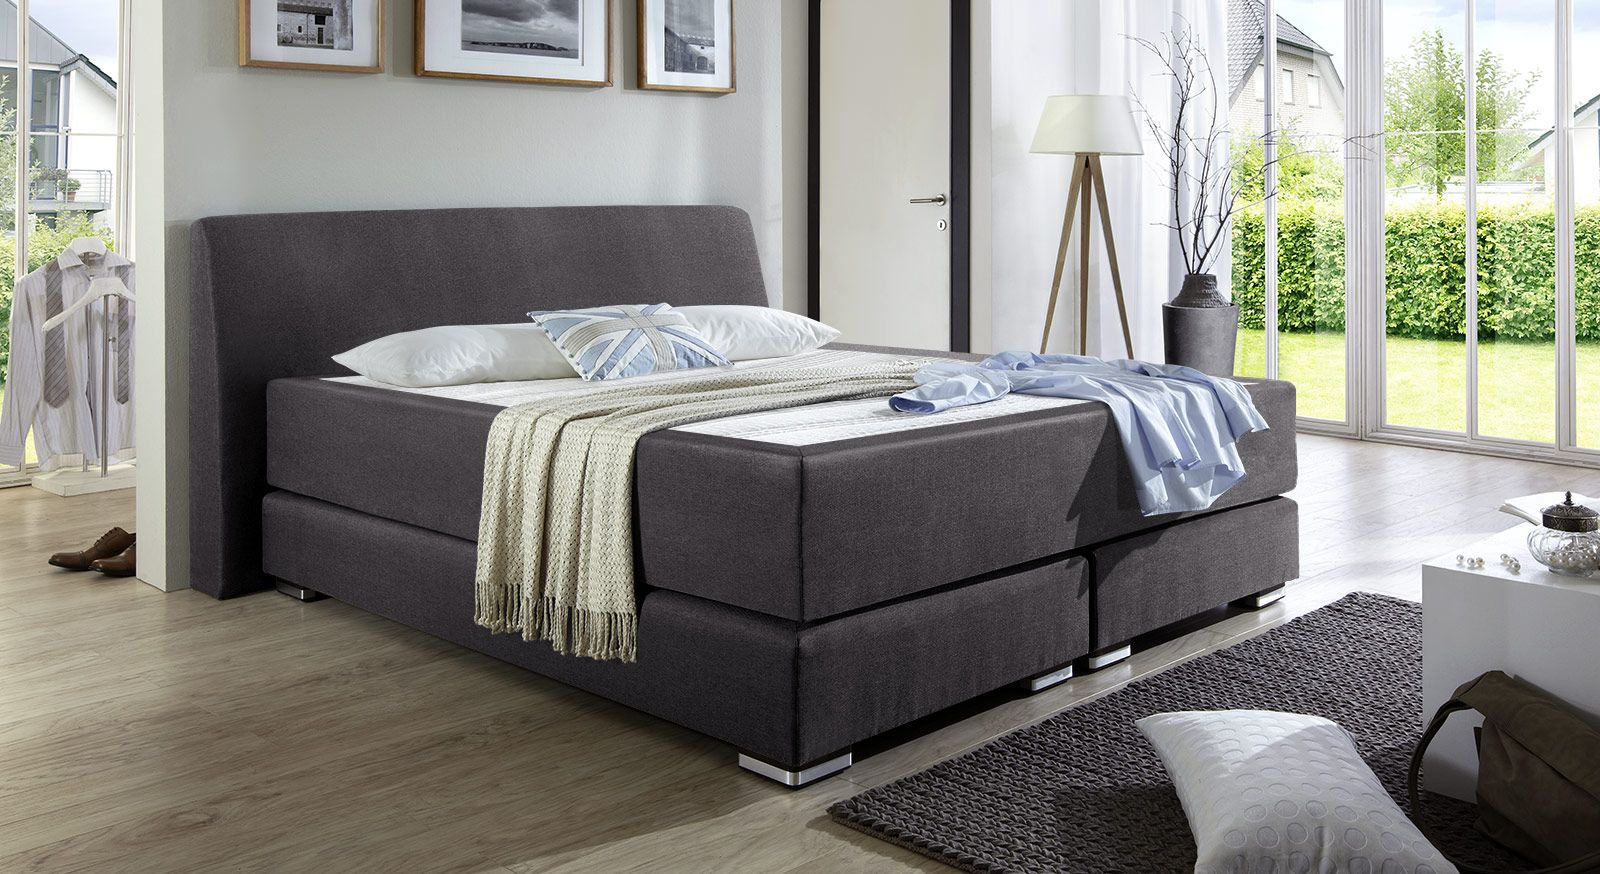 Boxspringbett design luxus  Boxspringbett